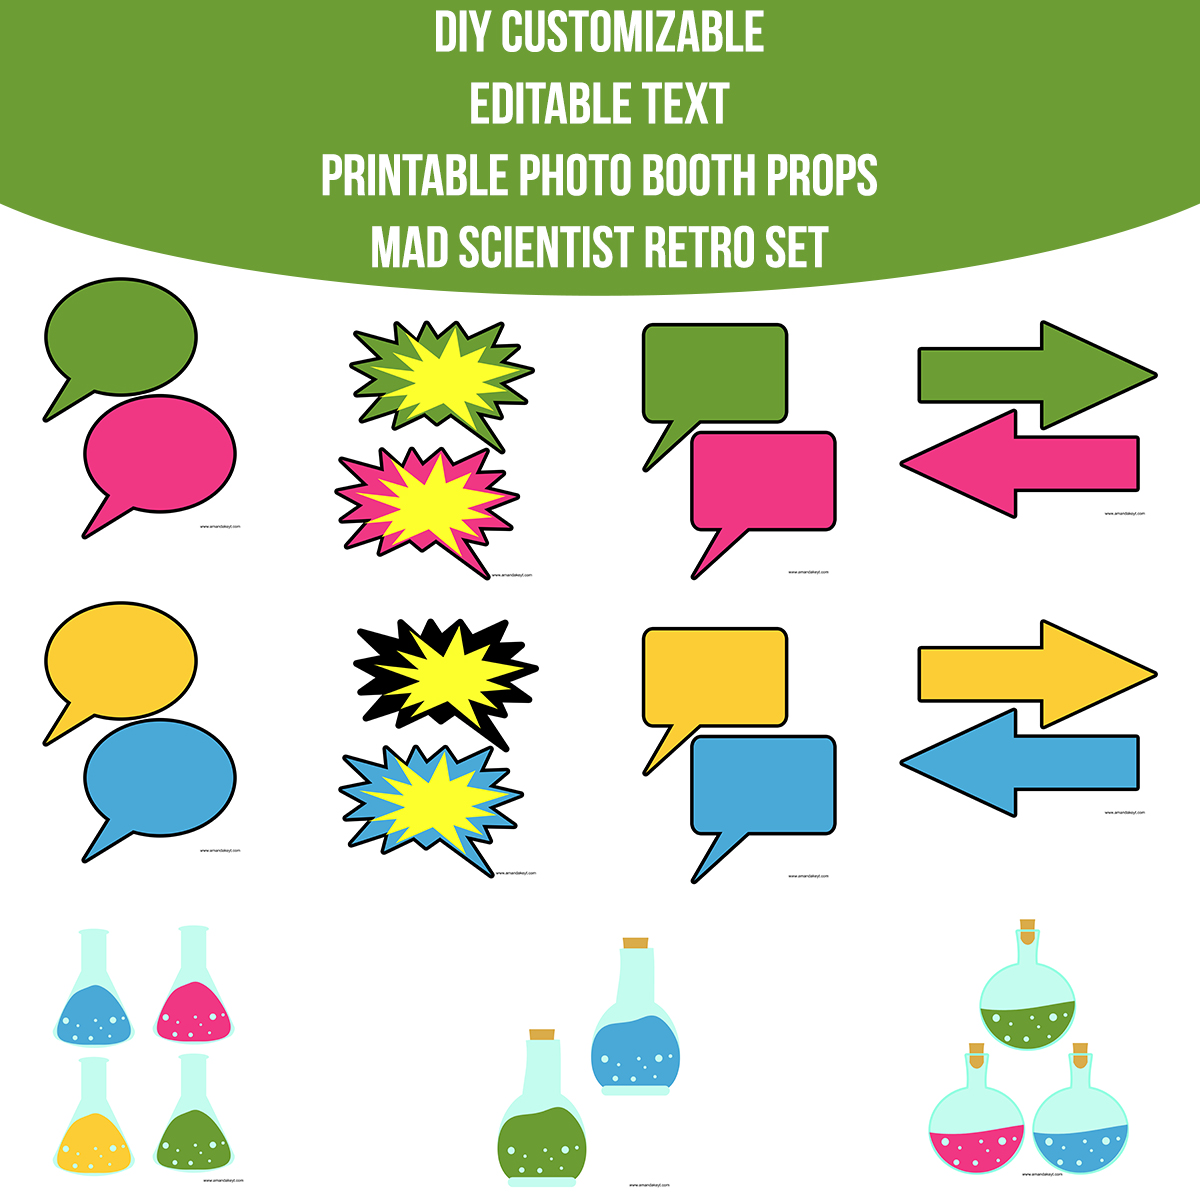 photo about Printable Mad Science Sign called Instantaneous Obtain Nuts Scientist Retro Do-it-yourself Customizable Editable Words Prop Established Amanda Keyt Printable Layouts